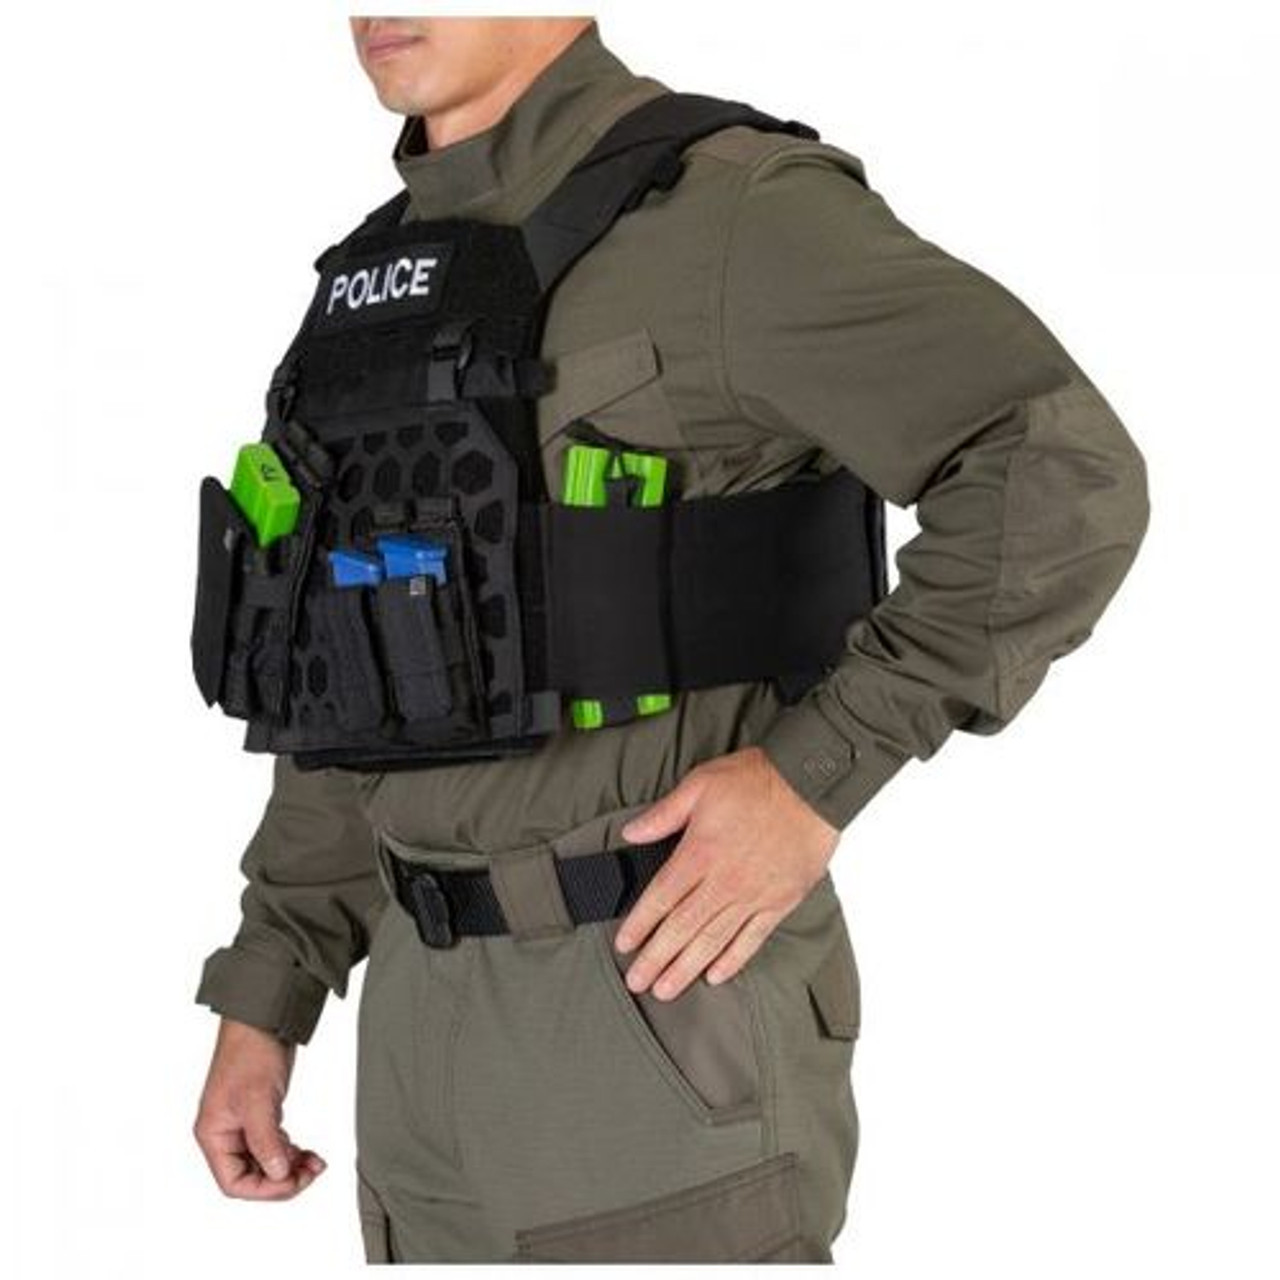 5.11 Tactical All Mission Plate Carrier, available in Black or Kangaroo Brown 59587